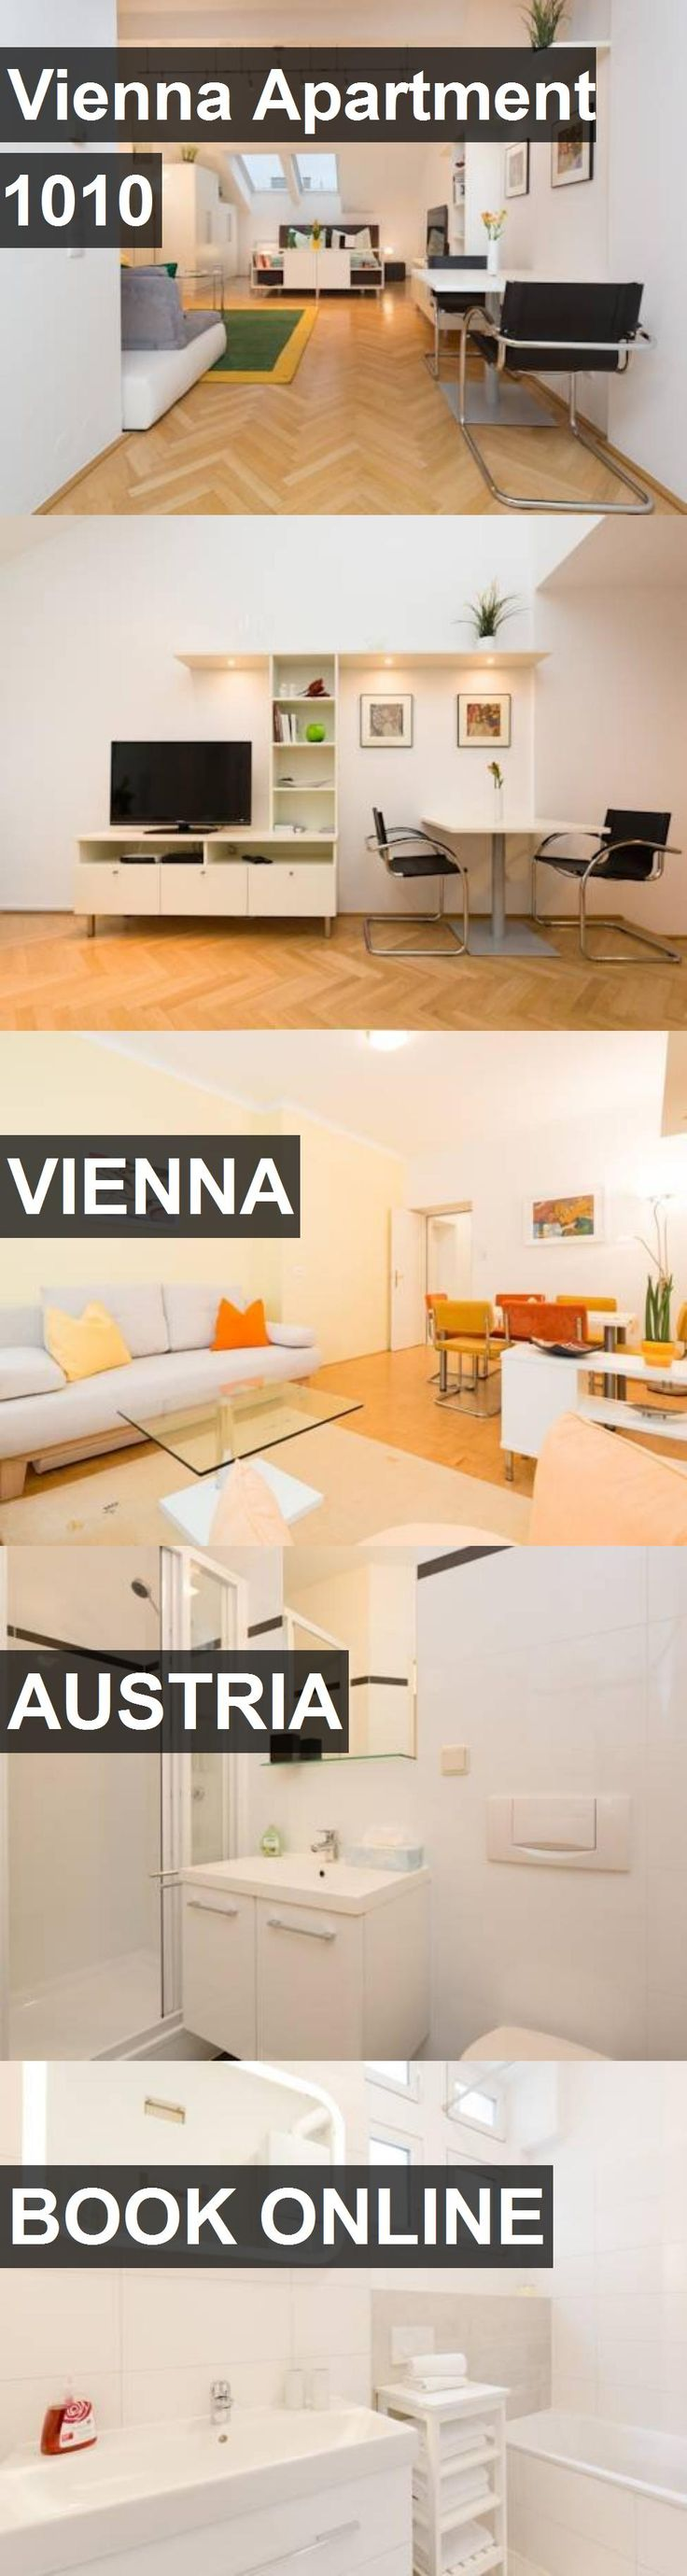 Hotel Vienna Apartment 1010 in Vienna, Austria. For more information, photos, reviews and best prices please follow the link. #Austria #Vienna #ViennaApartment1010 #hotel #travel #vacation